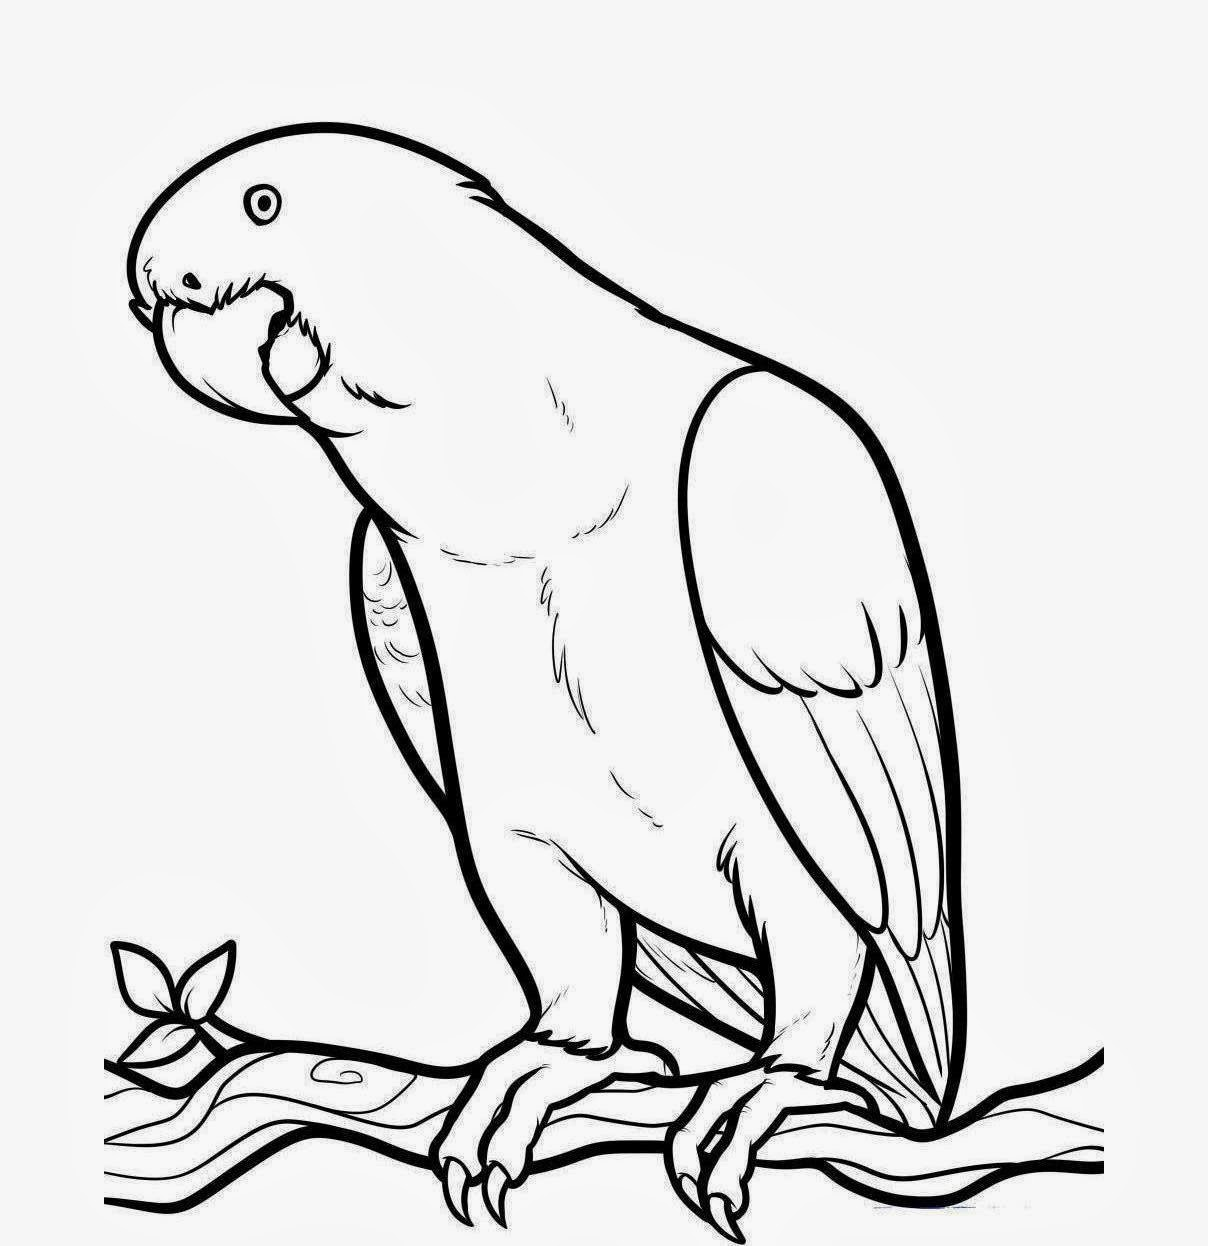 Drawing printout how to draw a bird nest - Bird Coloring Pages Printable Free Printable Coloring Pages With Bird Nest Coloring Page